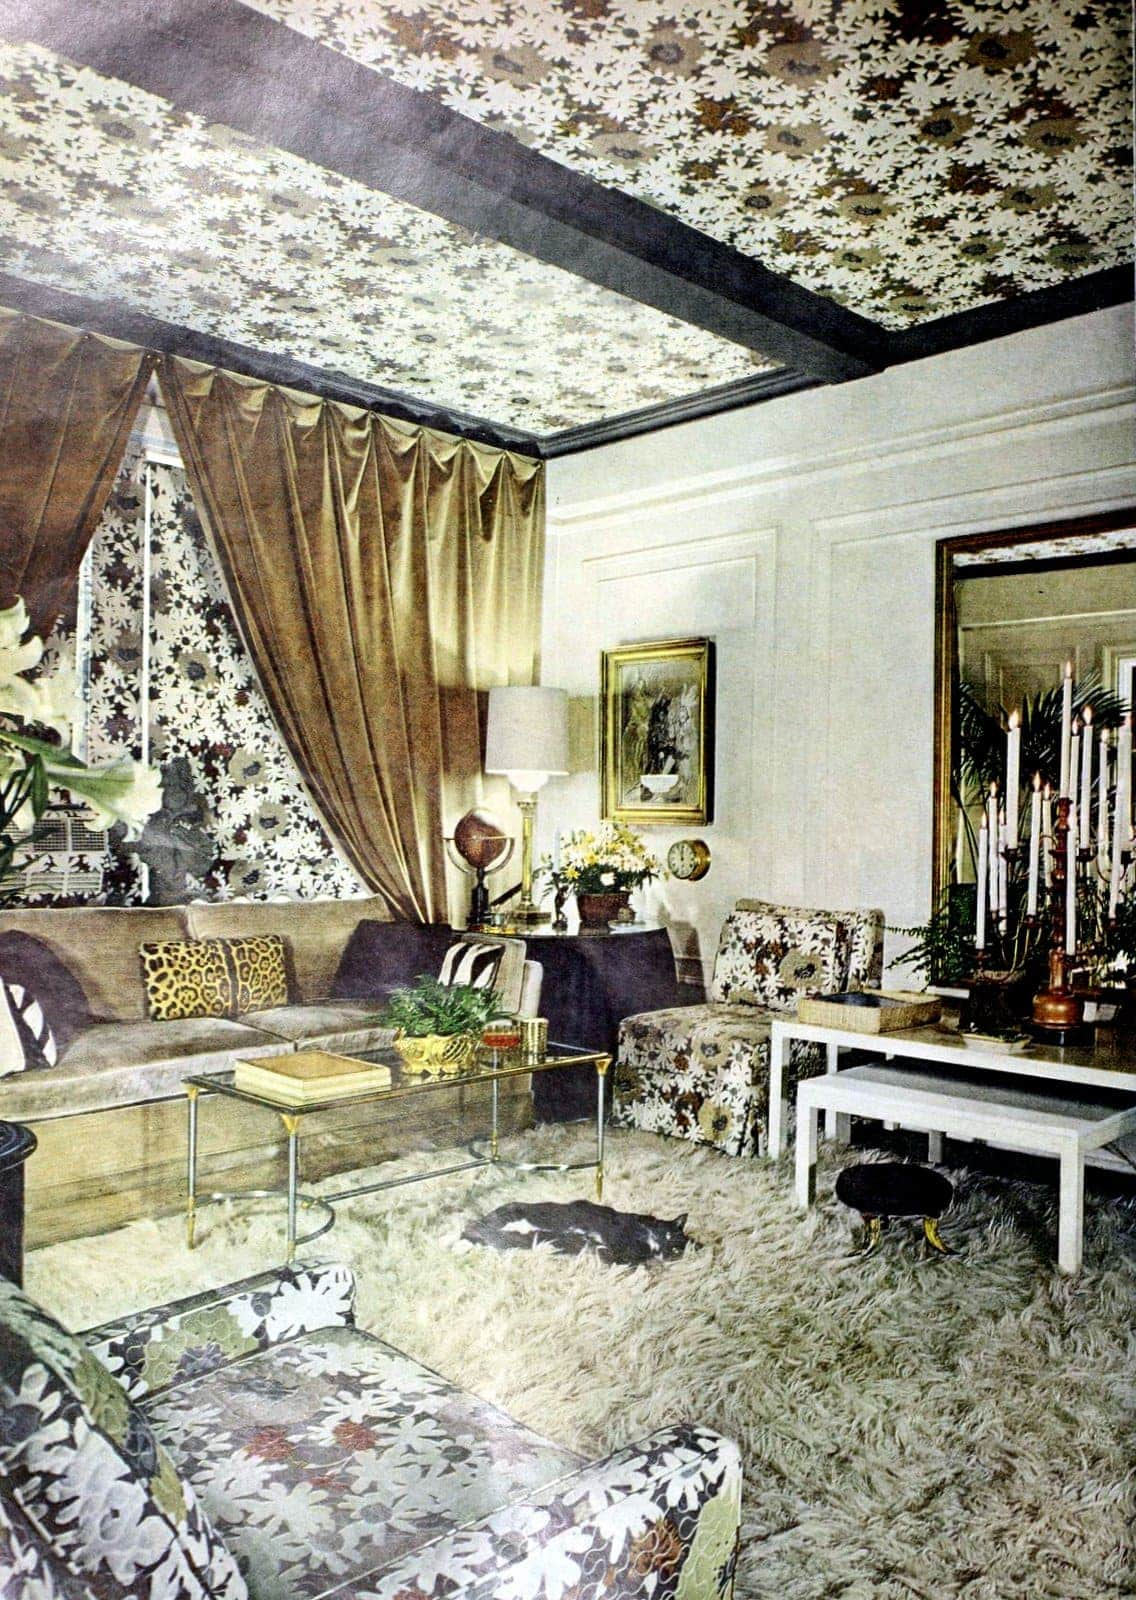 Super over the top retro living room decor from 1966 OTT